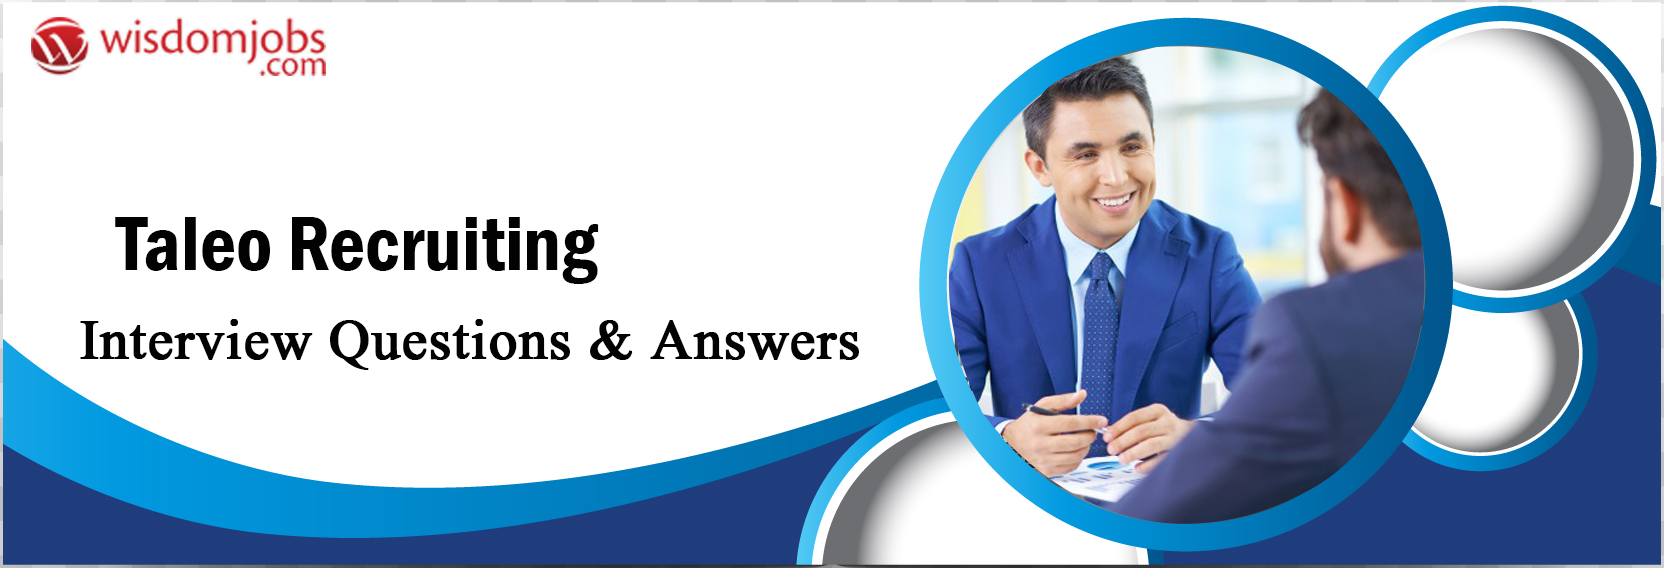 Taleo Recruiting Interview Questions & Answers